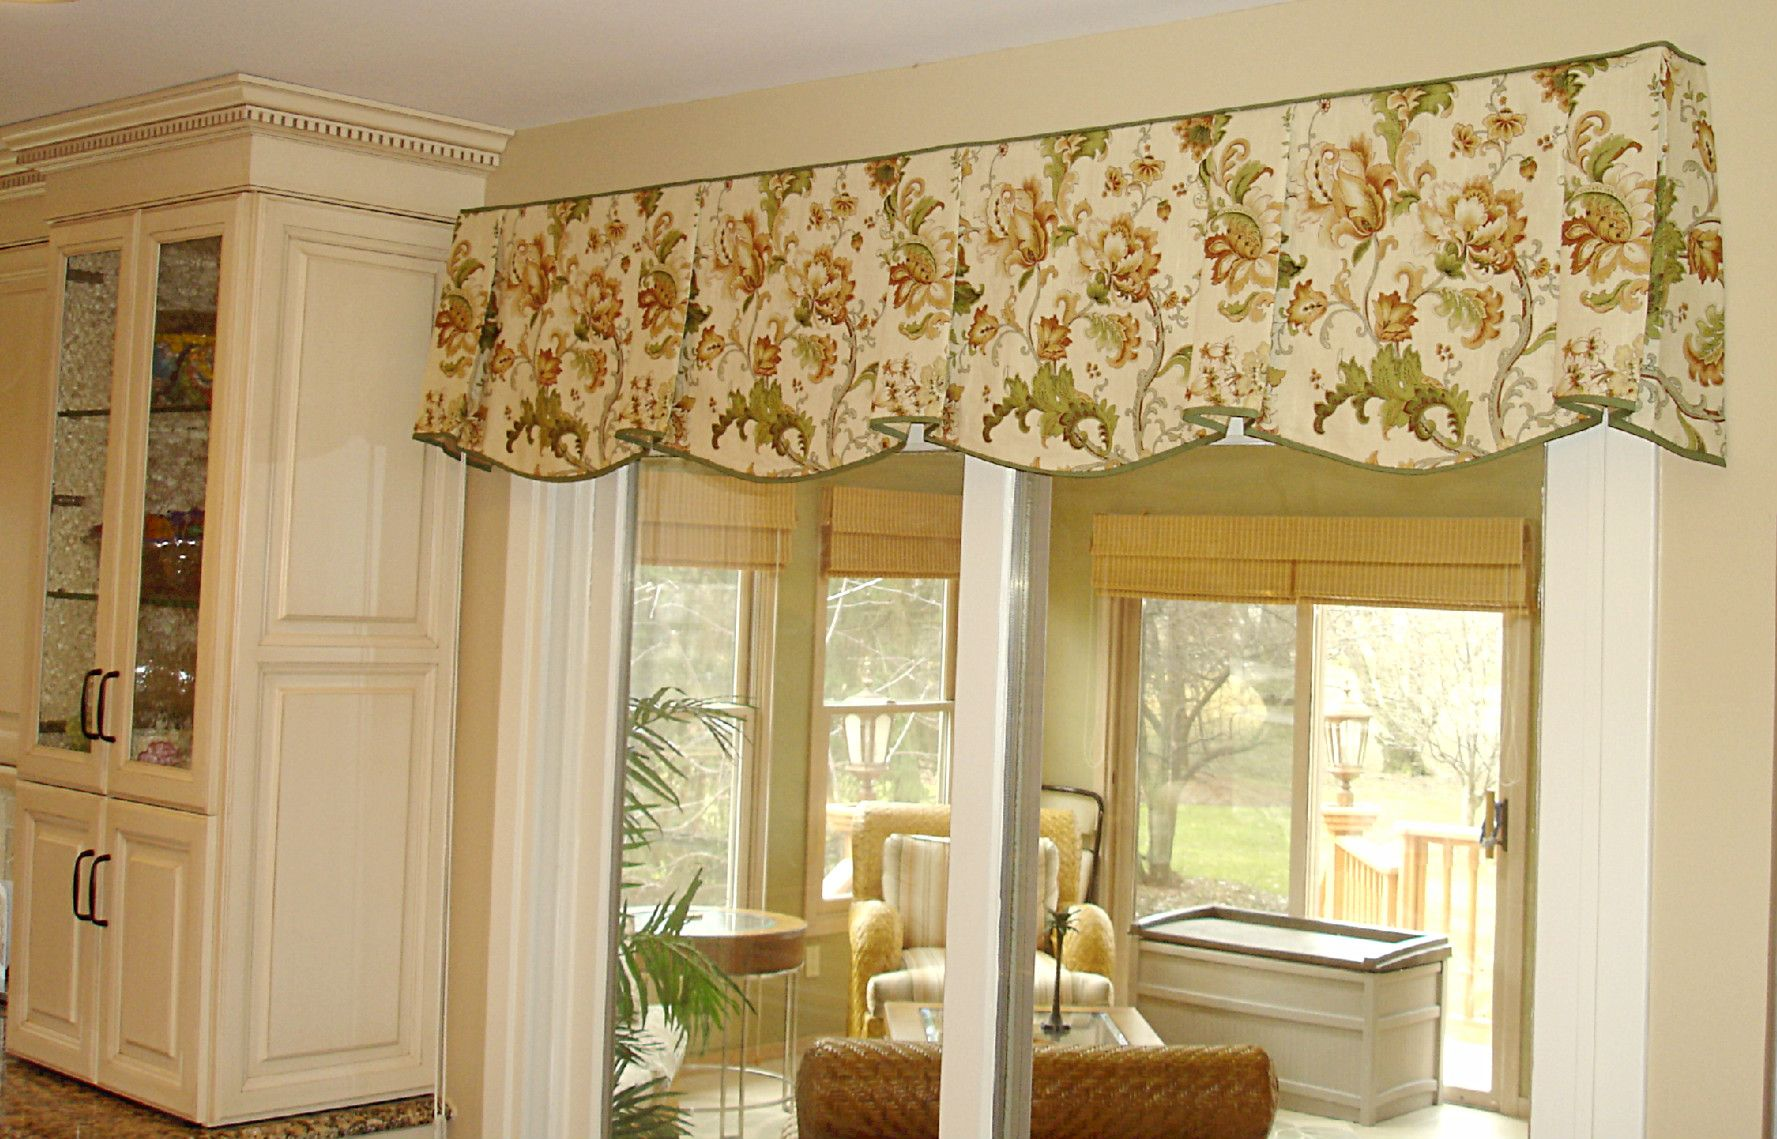 Living Room Valance Ideas Valance Ideas That Match Your Sliding Glass Doors Invado I Kitchen Curtains And Valances Modern Kitchen Curtains Kitchen Valances